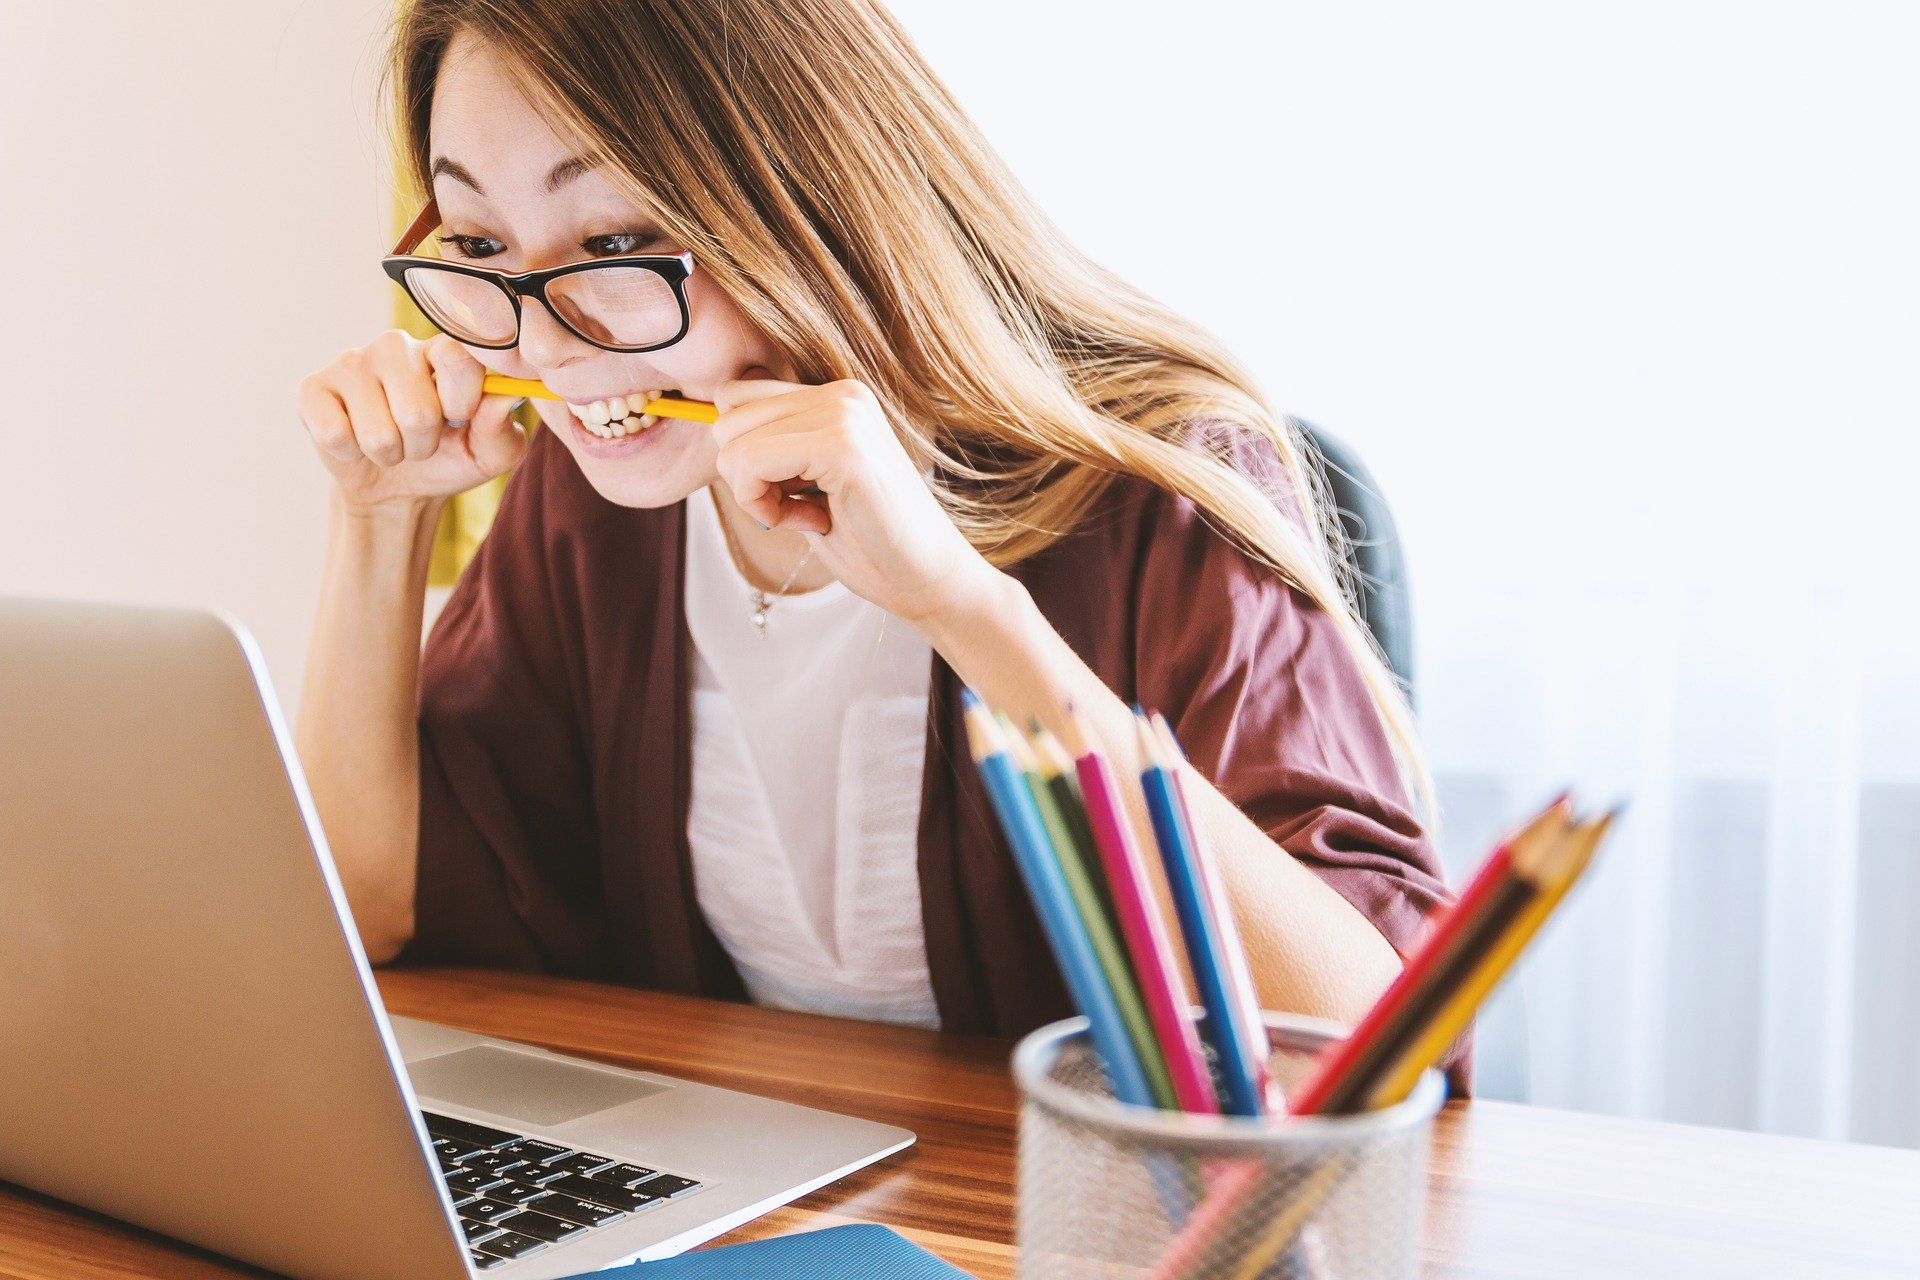 A woman bites on a pencil while looking anxiously at her laptop disabling social media comments